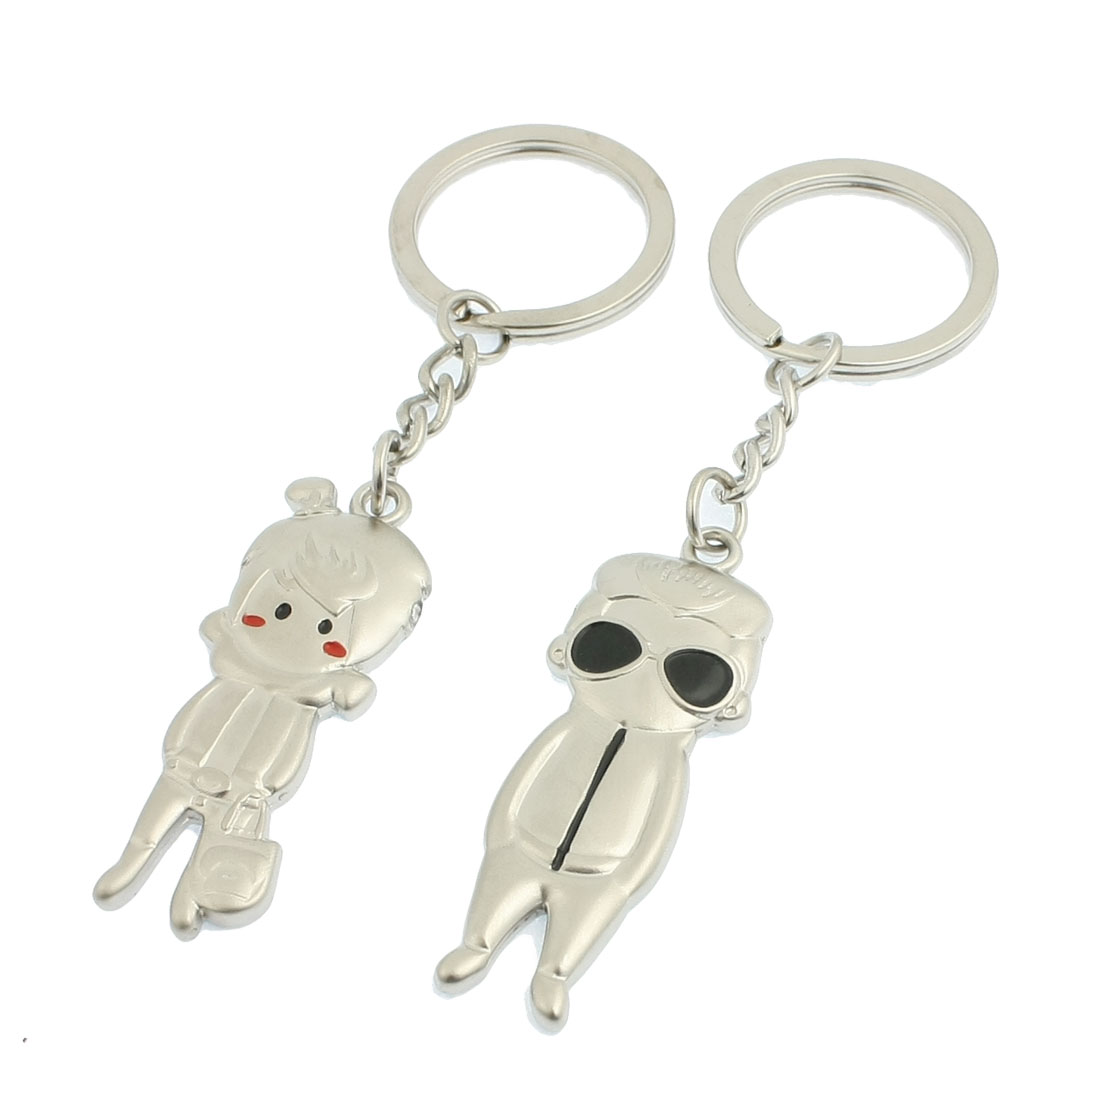 2 Pcs Metal Woman Man Shapes Pendent Keyrings Key Holder for Lover